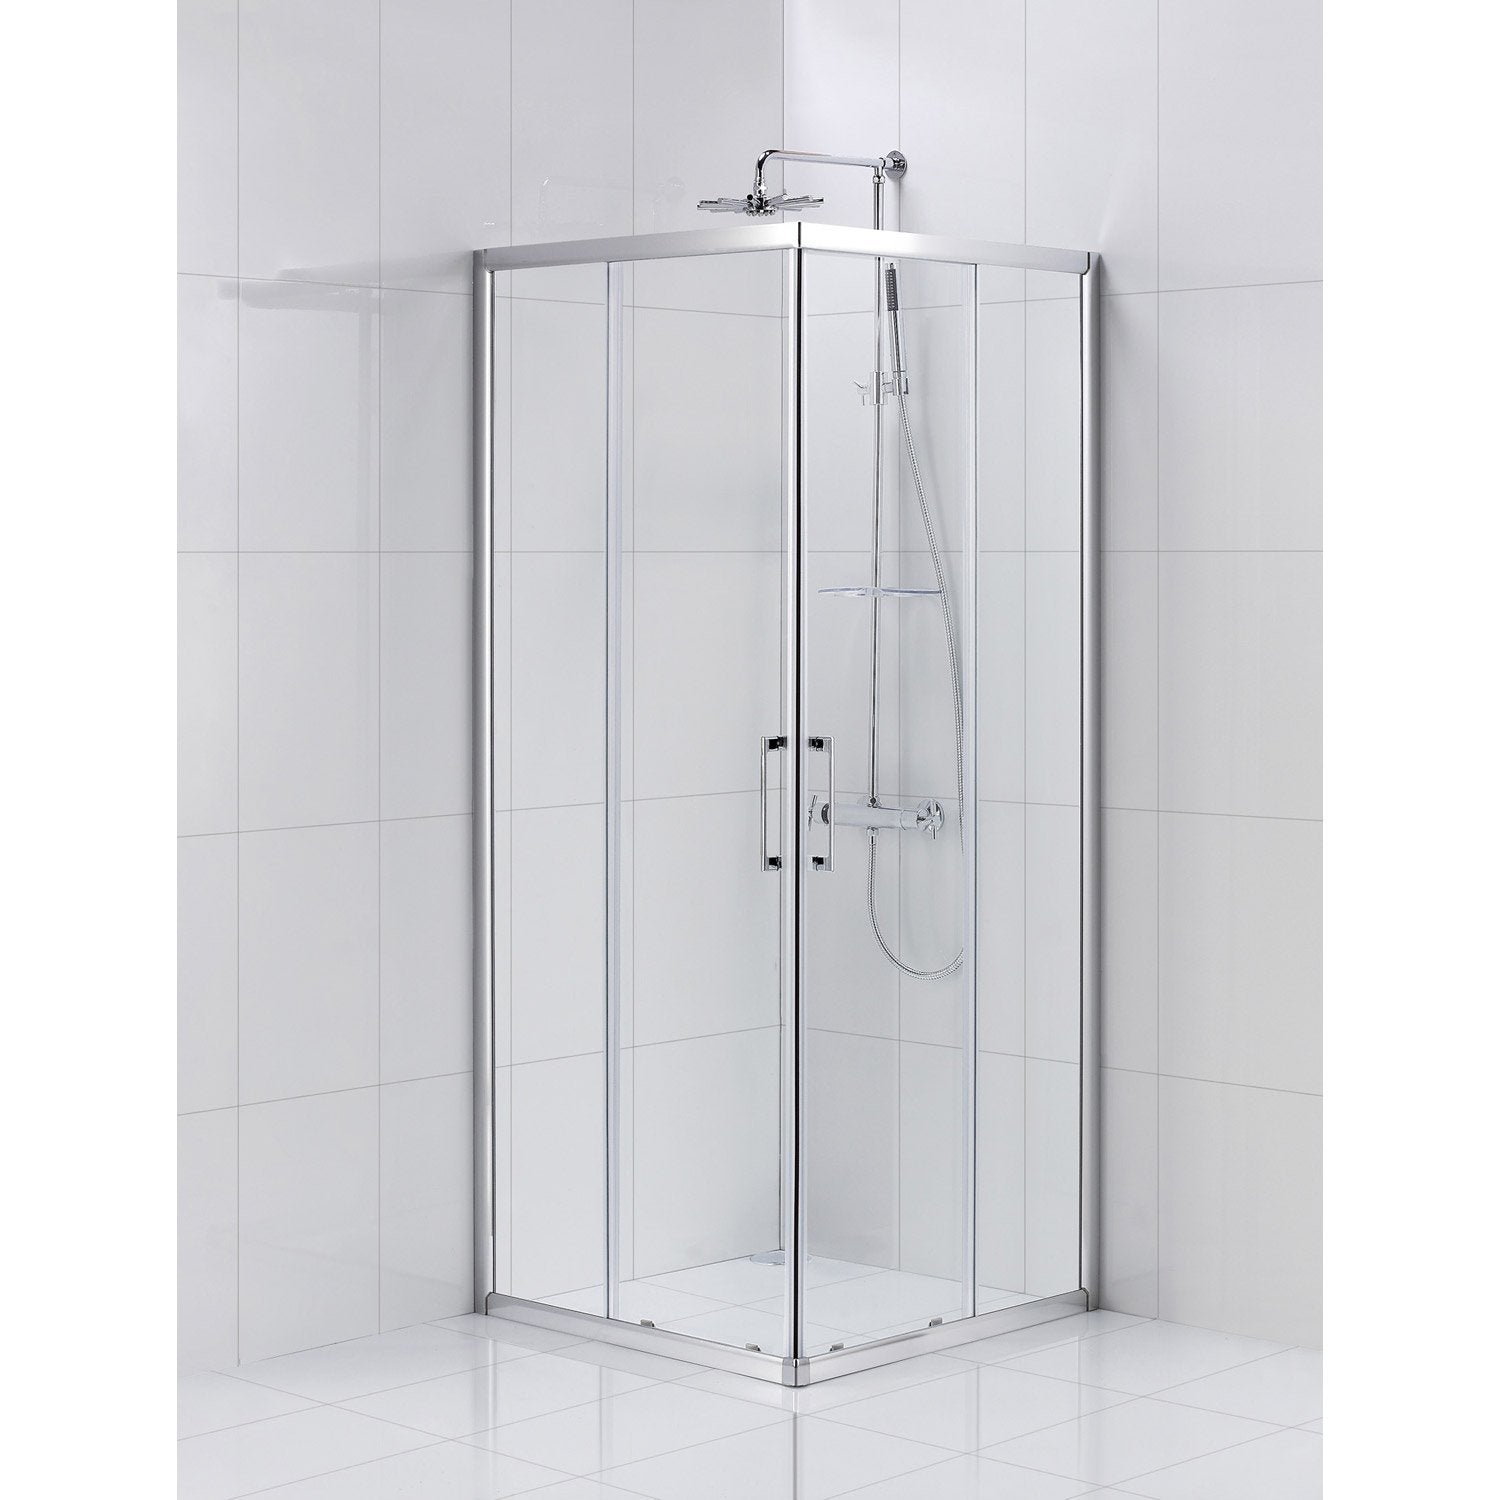 Porte de douche coulissante sensea remix verre transparent for Leroy merlin porte en verre